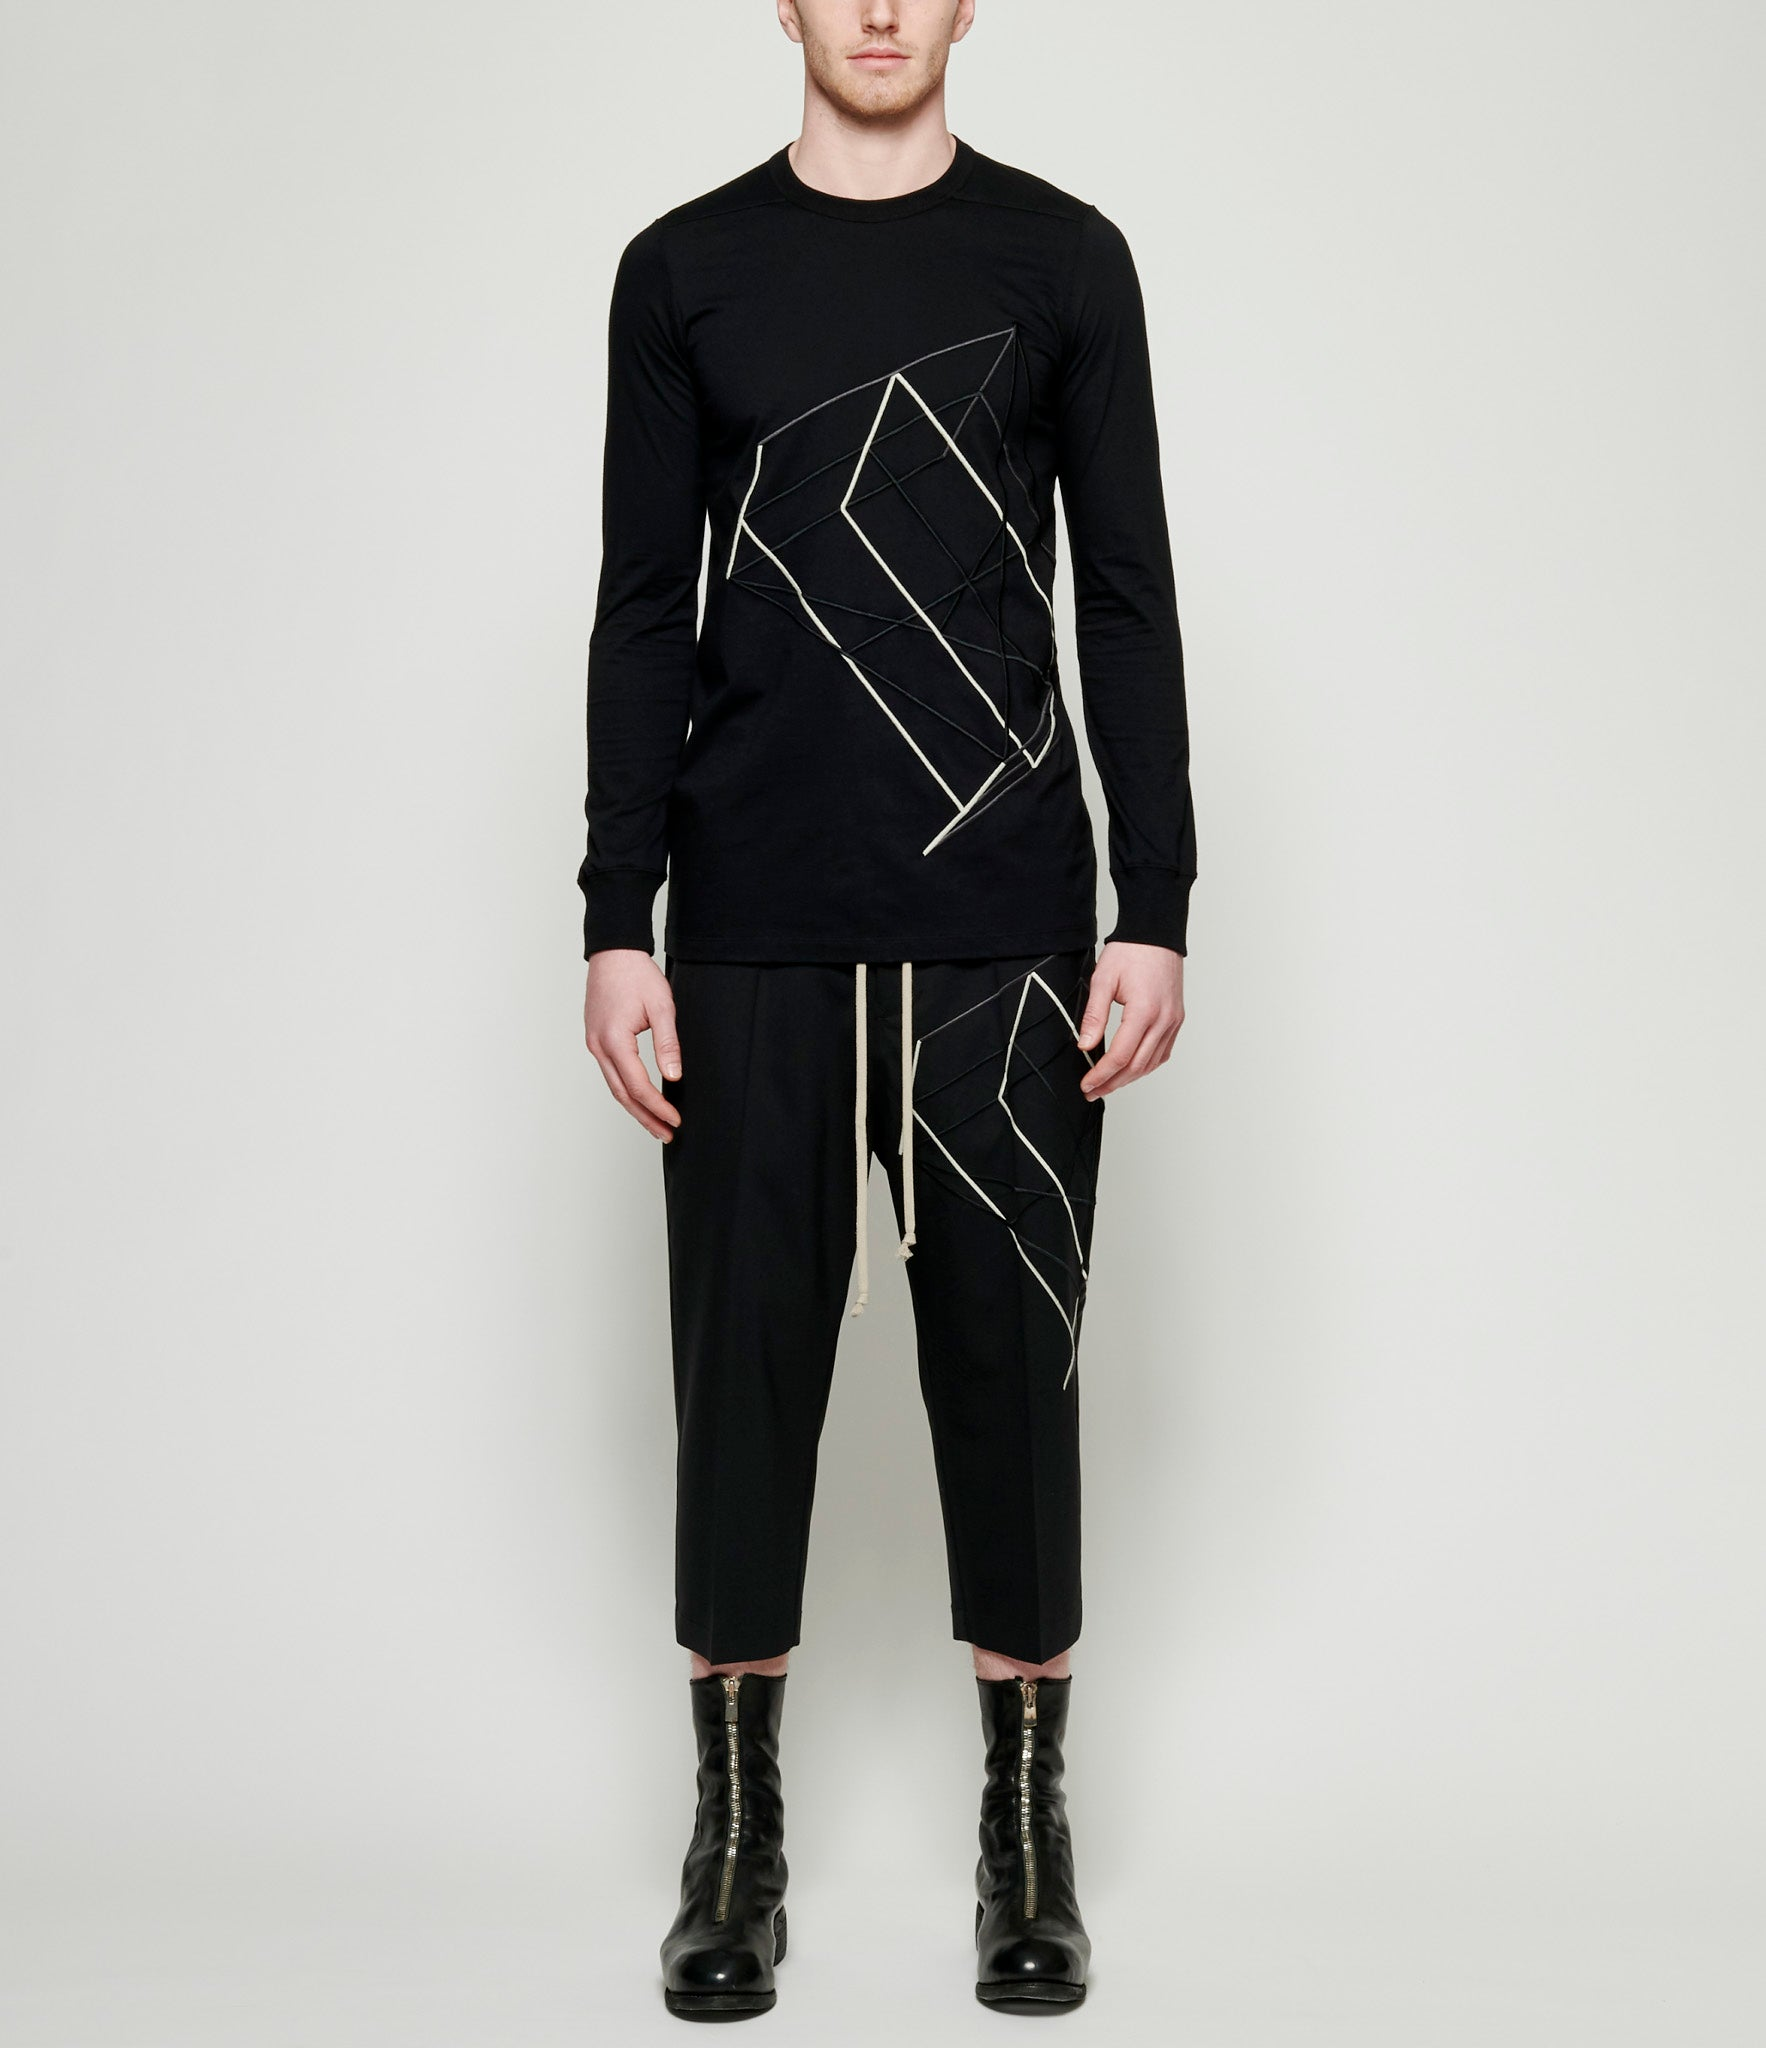 841ae91393b9 Rick Owens Embroidered Long Sleeve Level T-Shirt – IfSohoNewYork